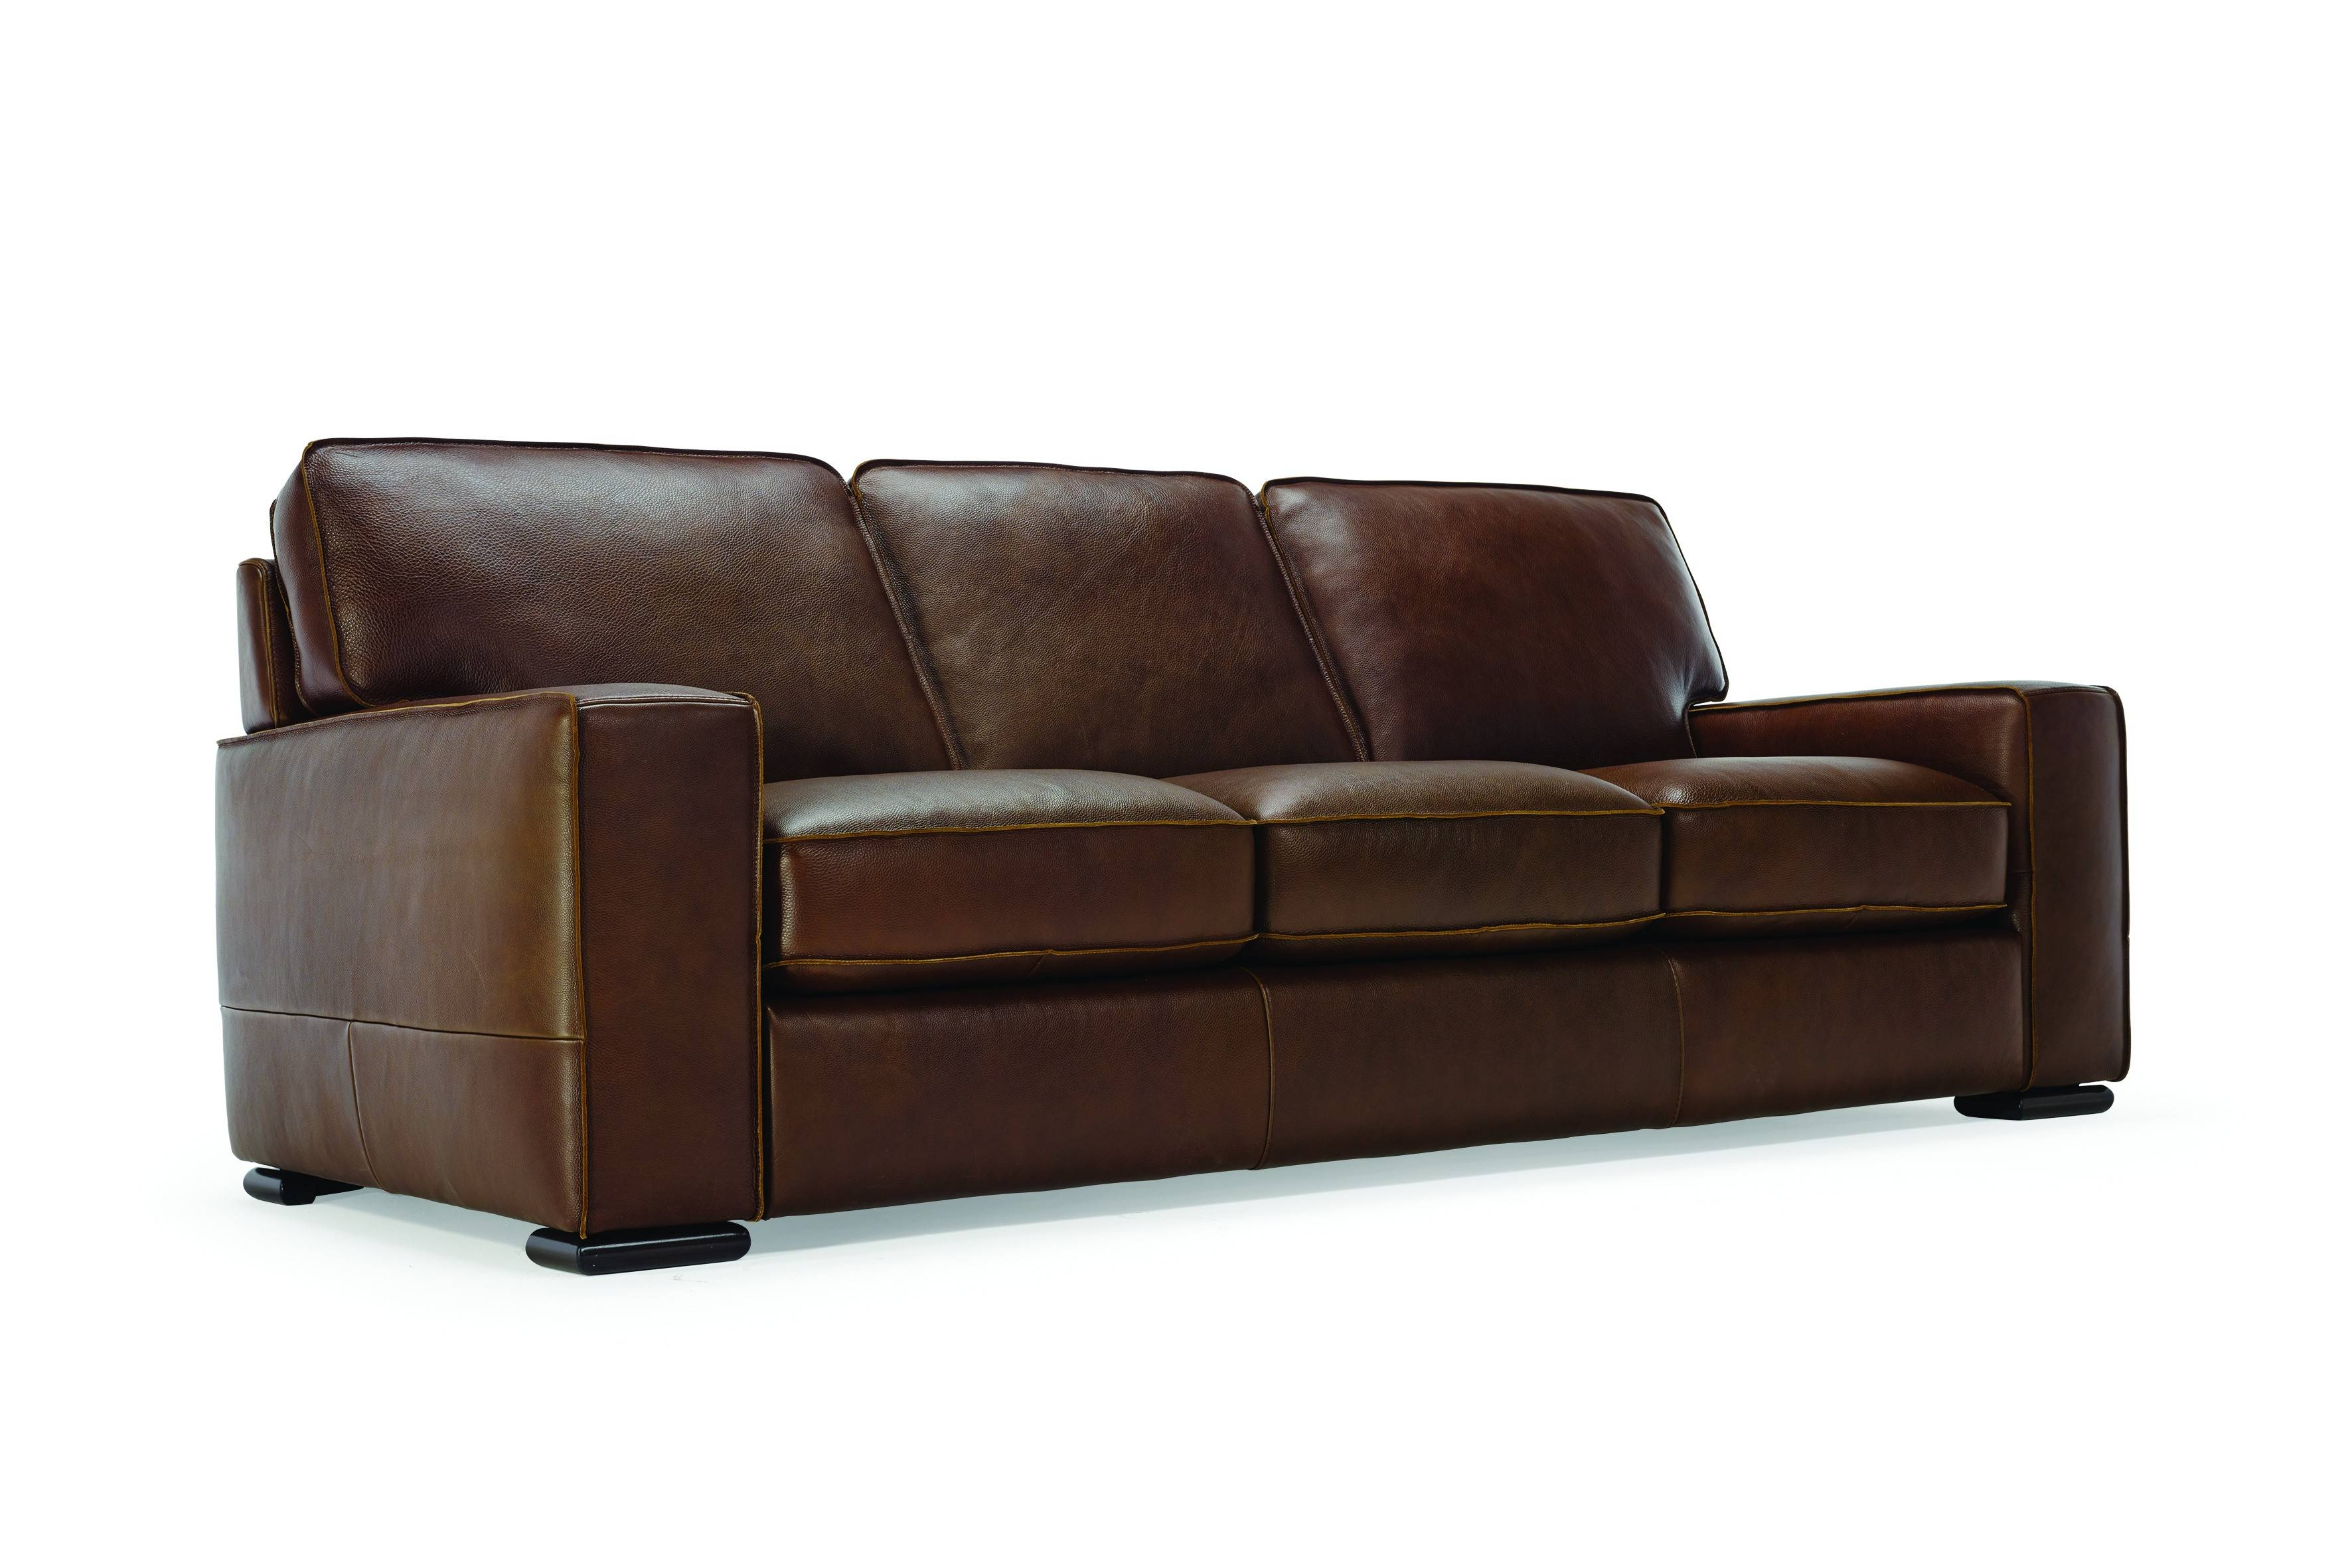 Furniture: Italsofa Leather Sofa Price | Natuzzi Leather Couch for Traditional Leather Couch (Image 9 of 30)